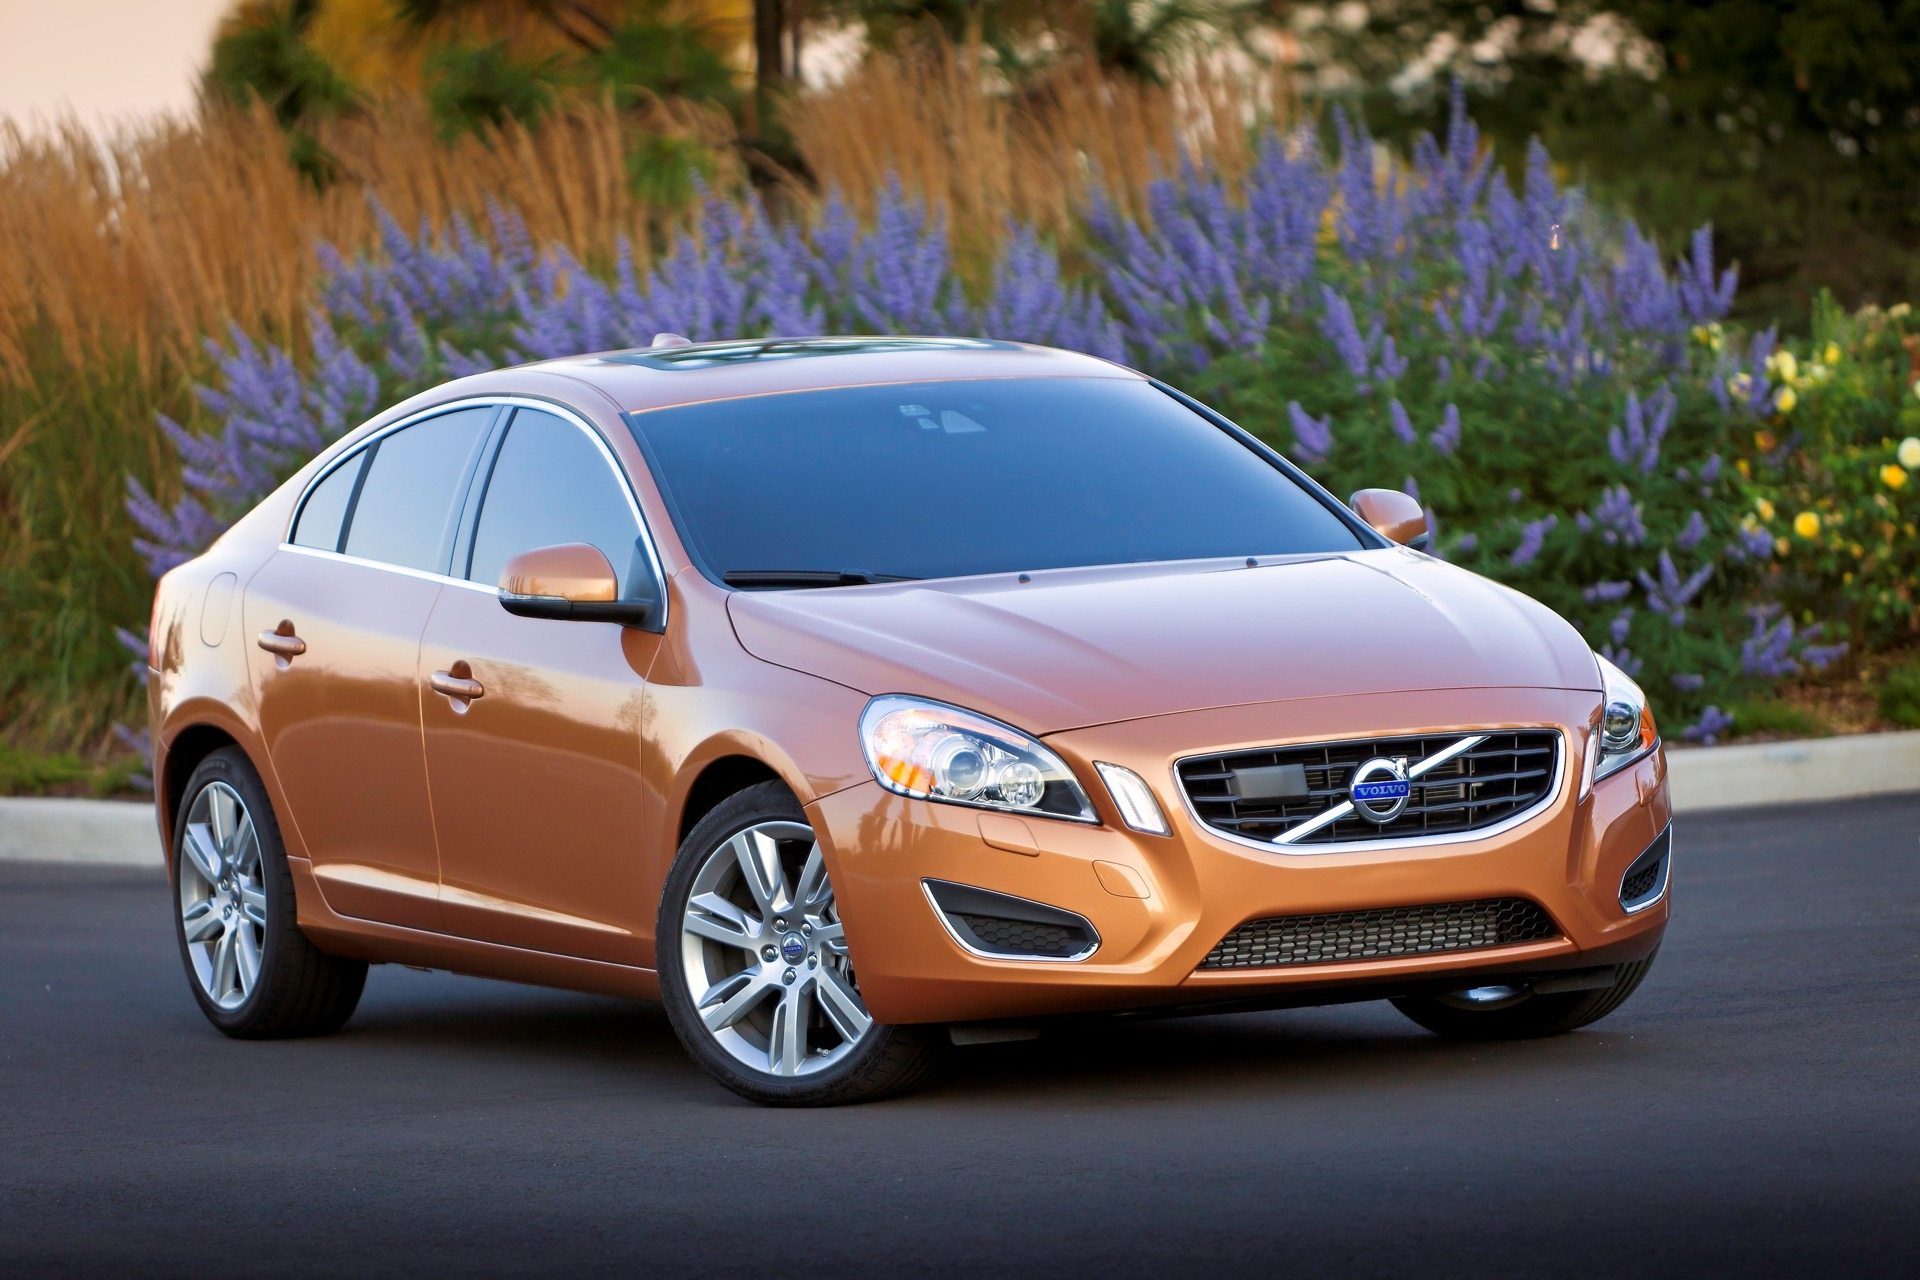 S60 T6 Awd Static Beauty11 -  Volvo